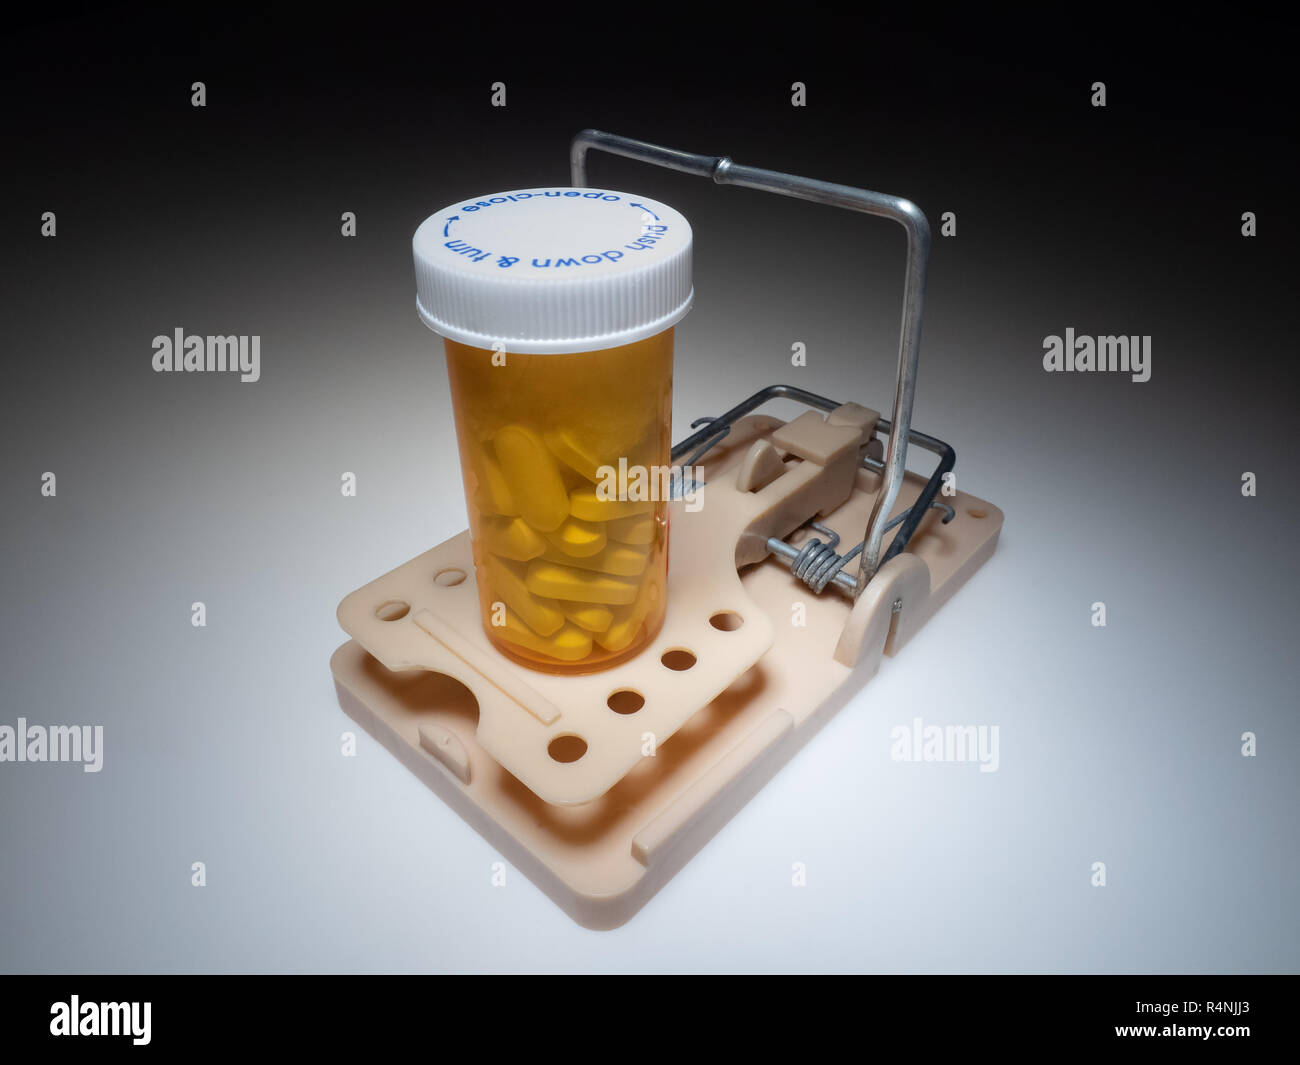 Mousetrap with medical bottle full of pills. Drug cost and addiction concept. - Stock Image